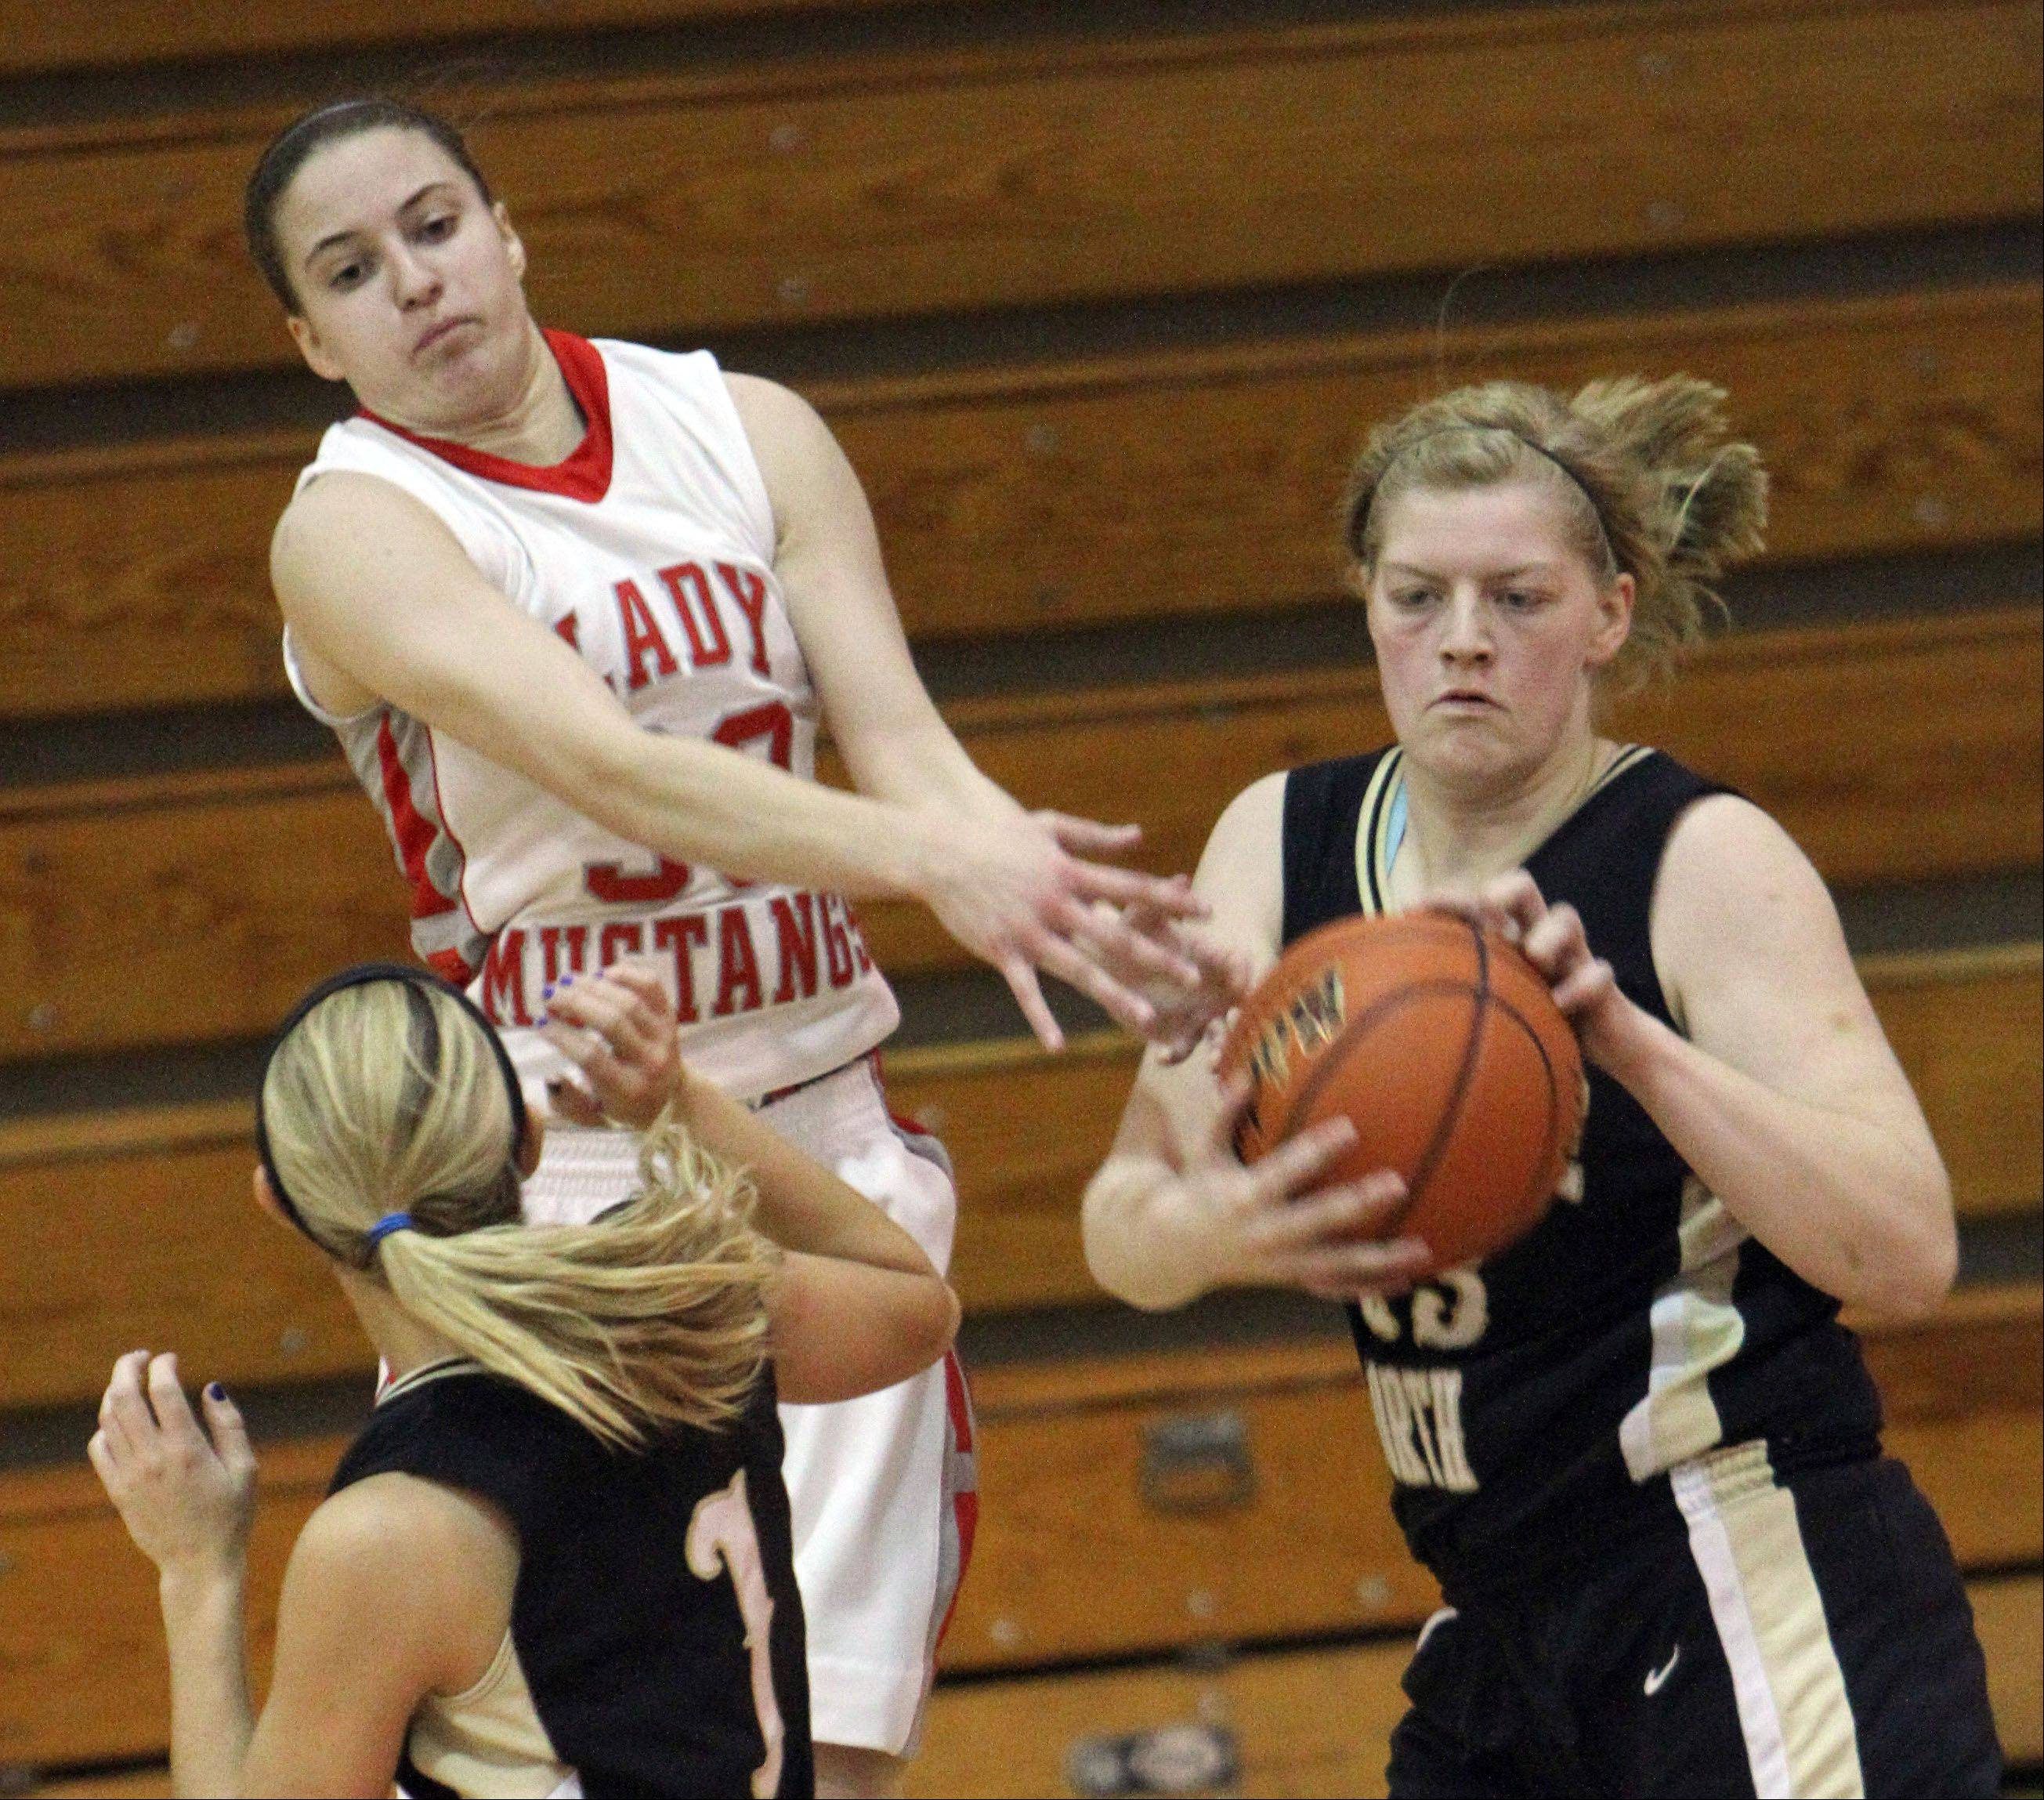 Mundelein's Lauren Rouse, left, battles for a rebound with Grayslake North's Joanna Guhl, right, and Jordyn Bowen during the Mundelein High School Turkey Tournament on Tuesday.